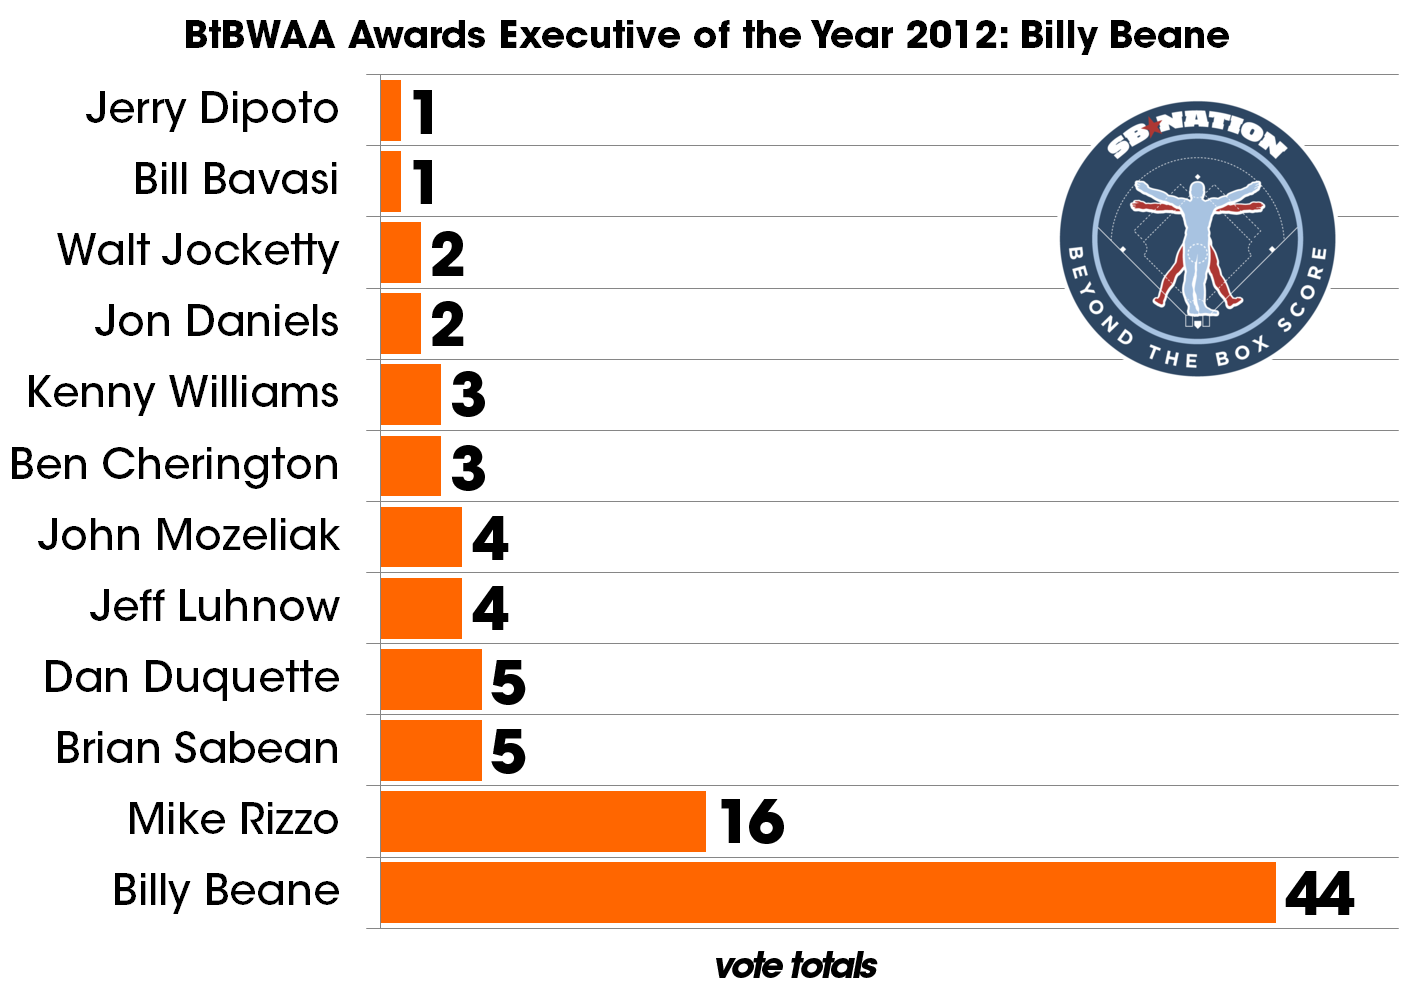 Btbswaa-awards-executive